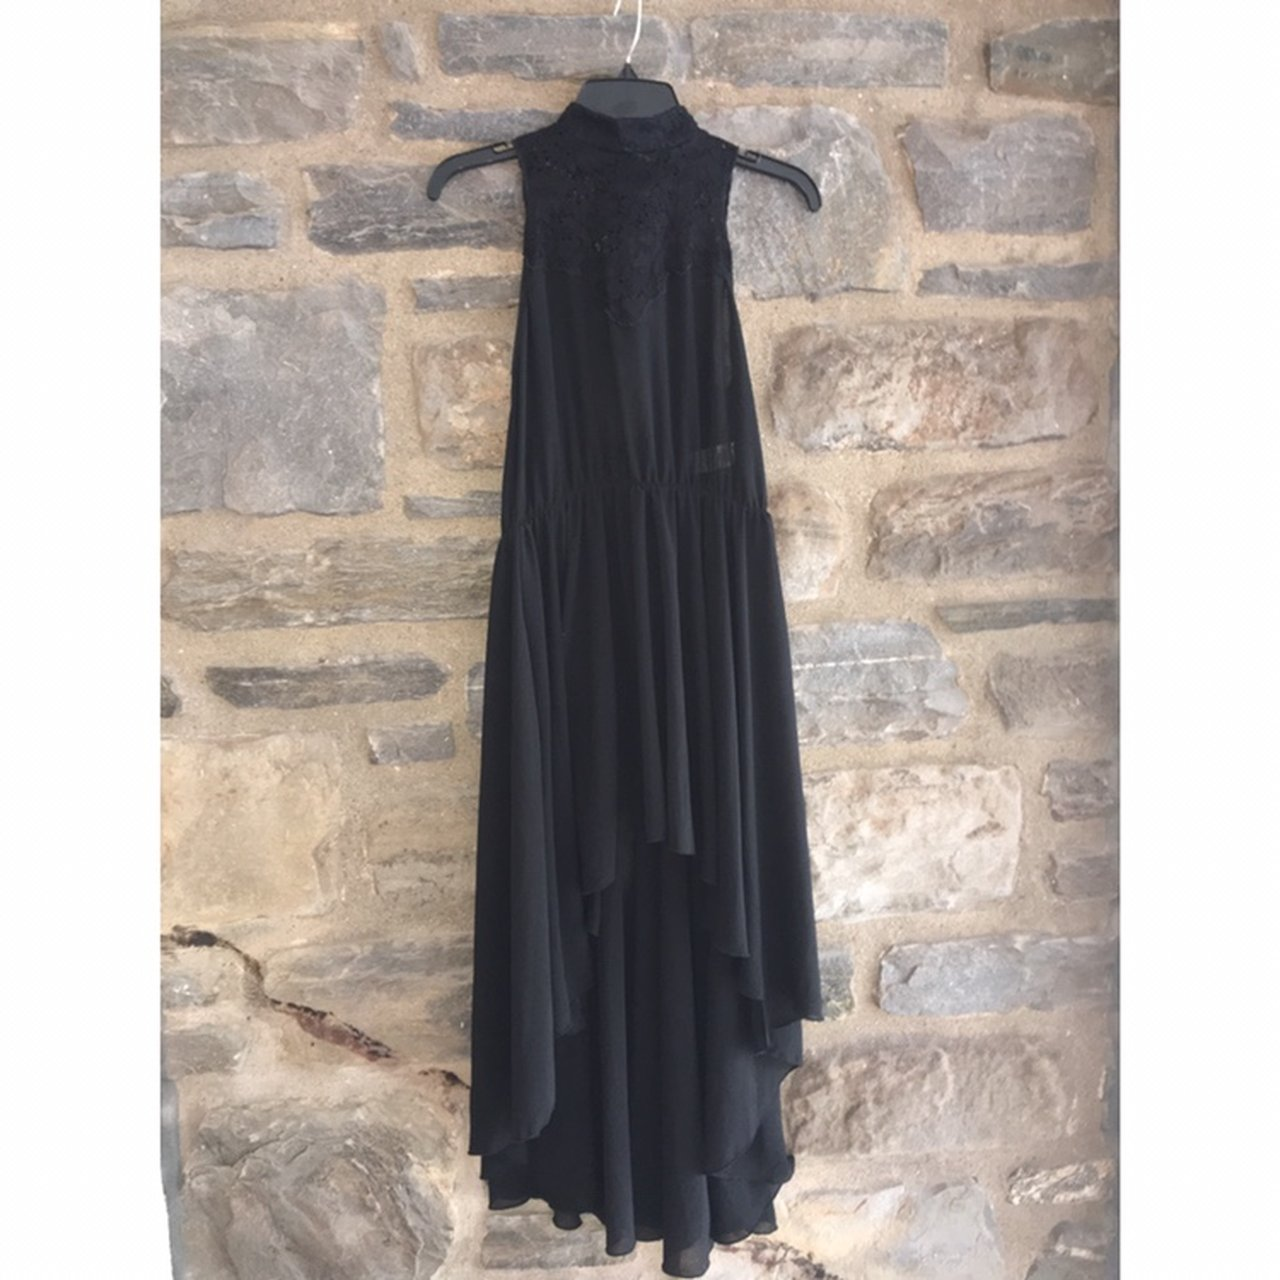 1bb0875099351 beautiful sheer black high low